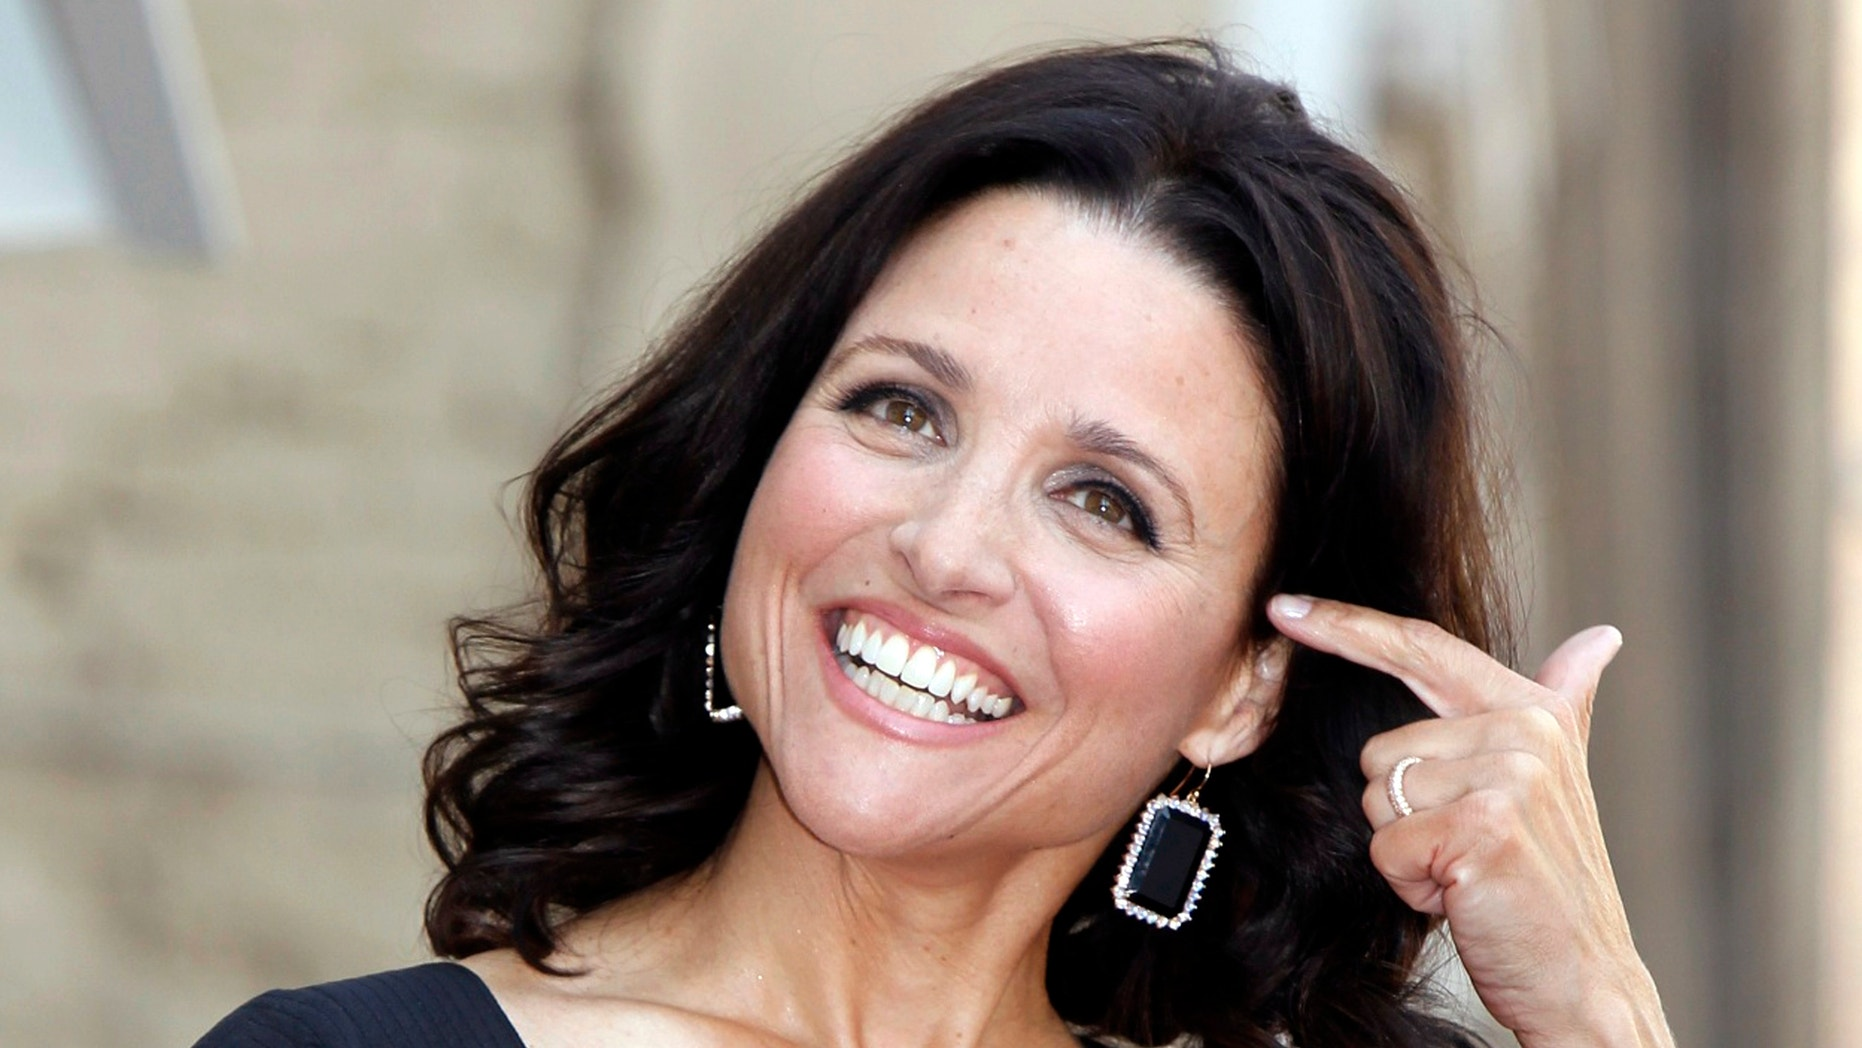 Actress Julia Louis-Dreyfus attends a ceremony to unveil her star on the Hollywood Walk of Fame in Hollywood, California May 4, 2010.